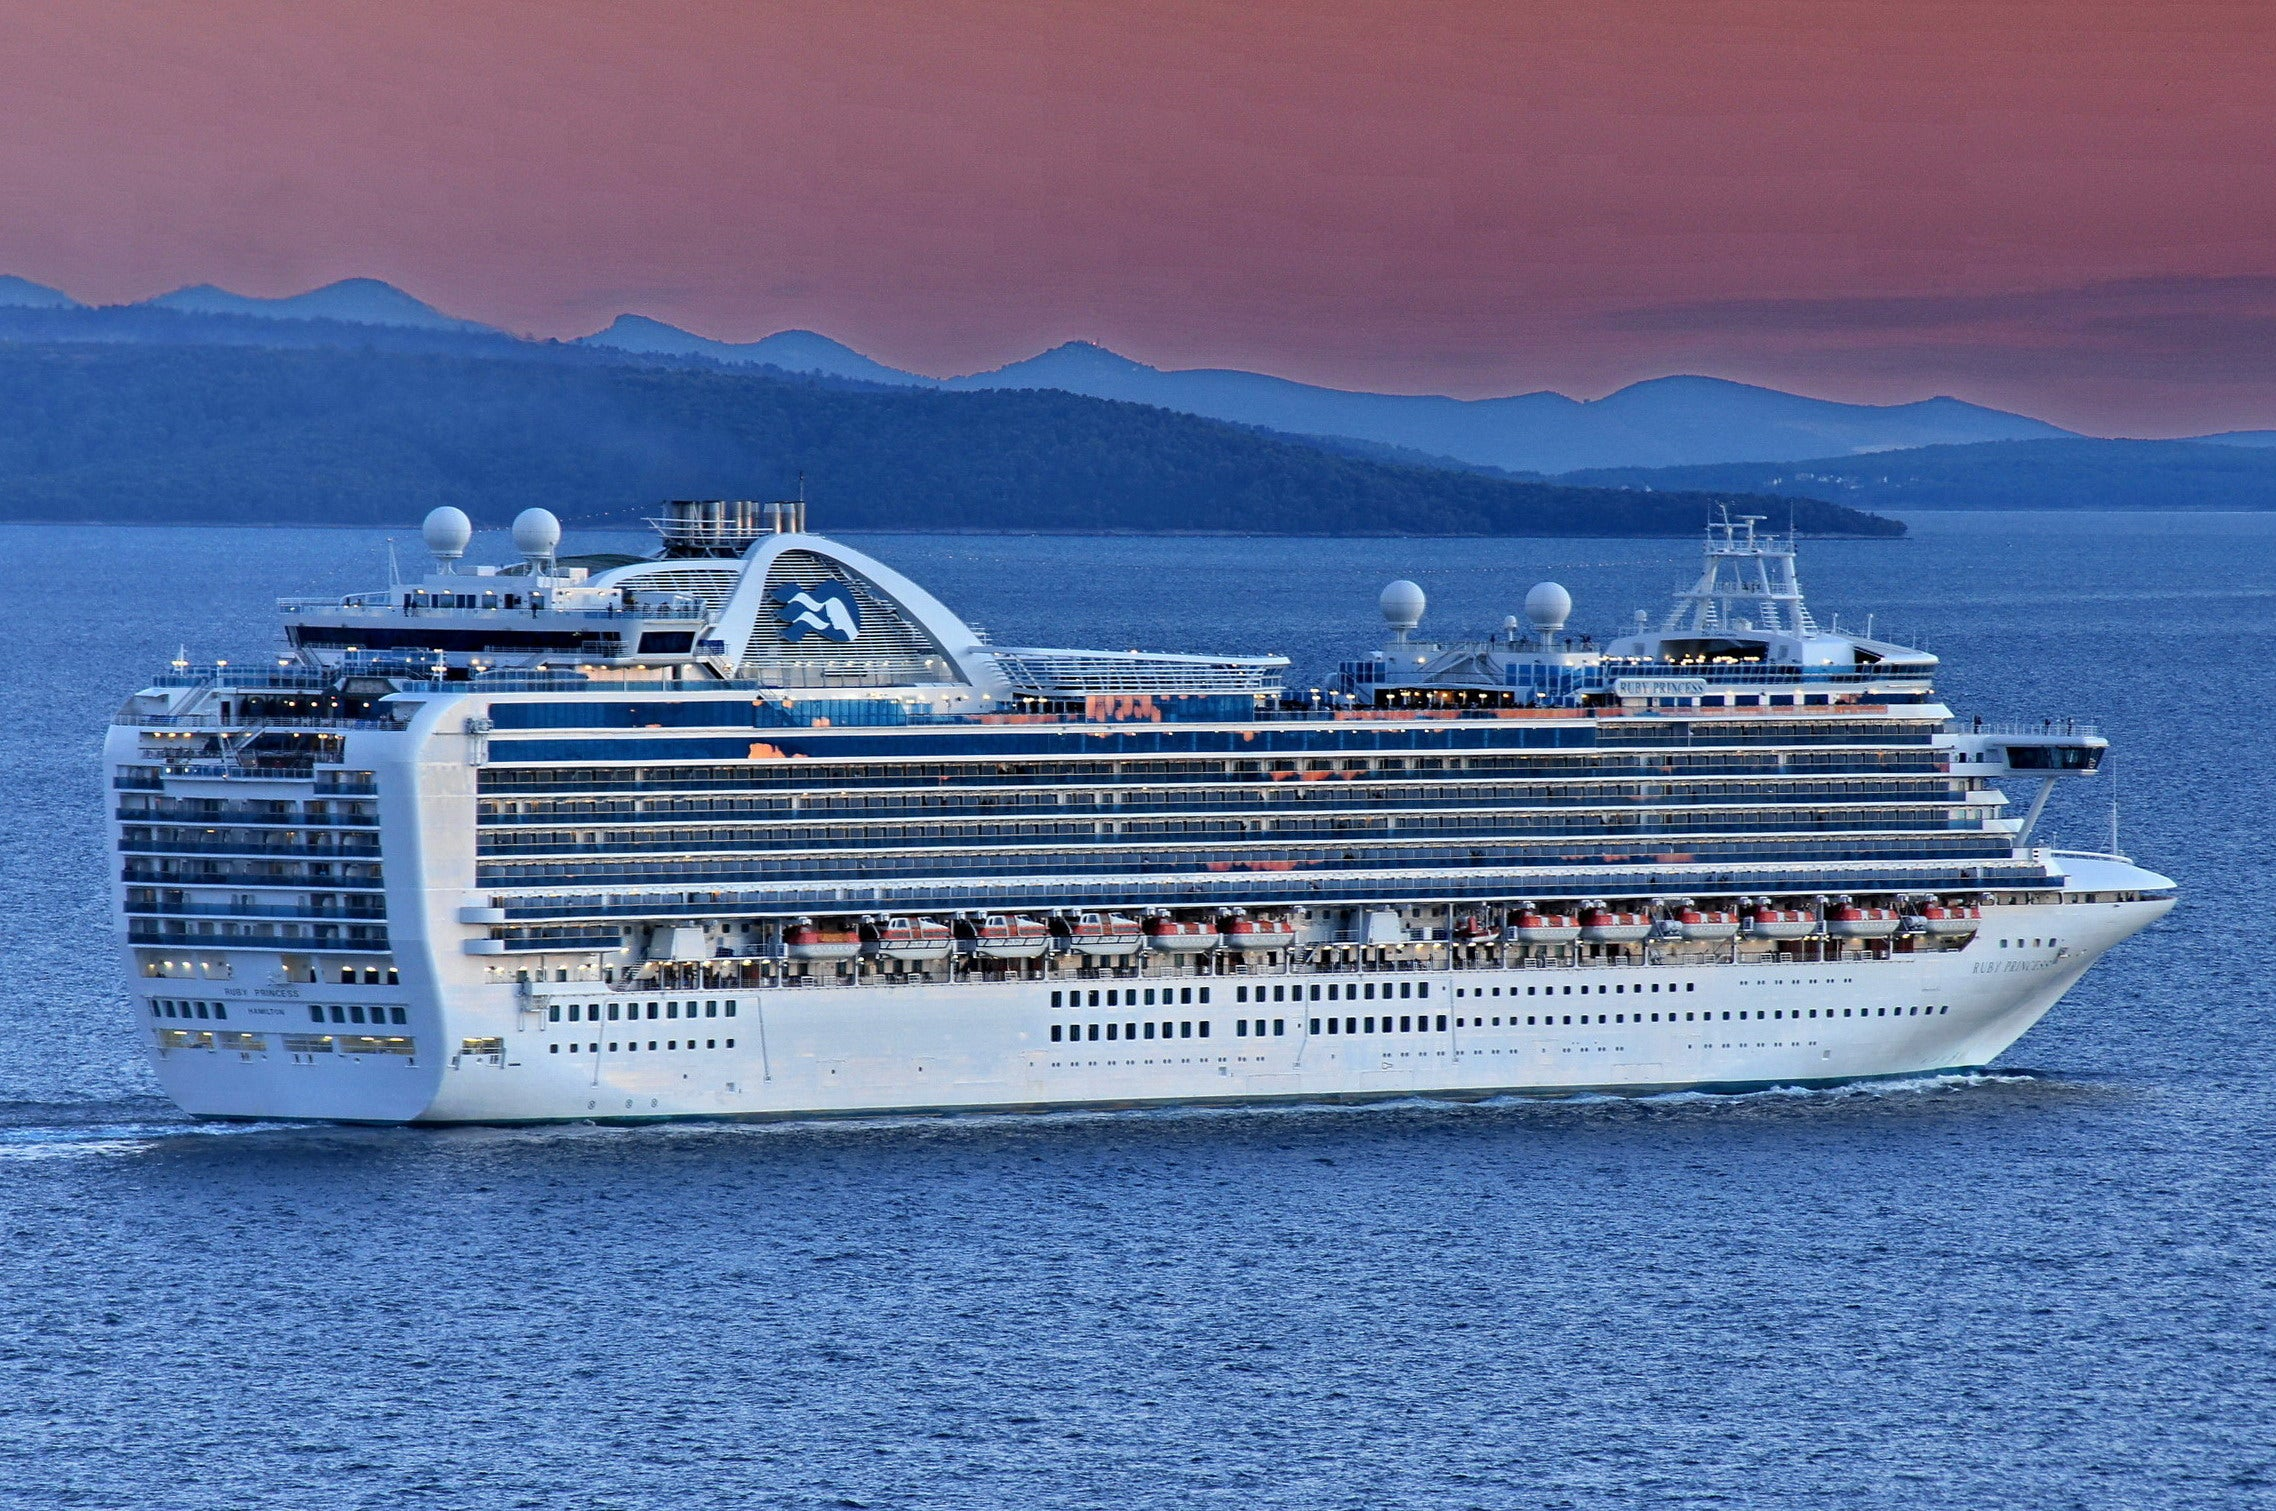 Criminal investigation launched after 600 cruise passengers test positive for coronavirus